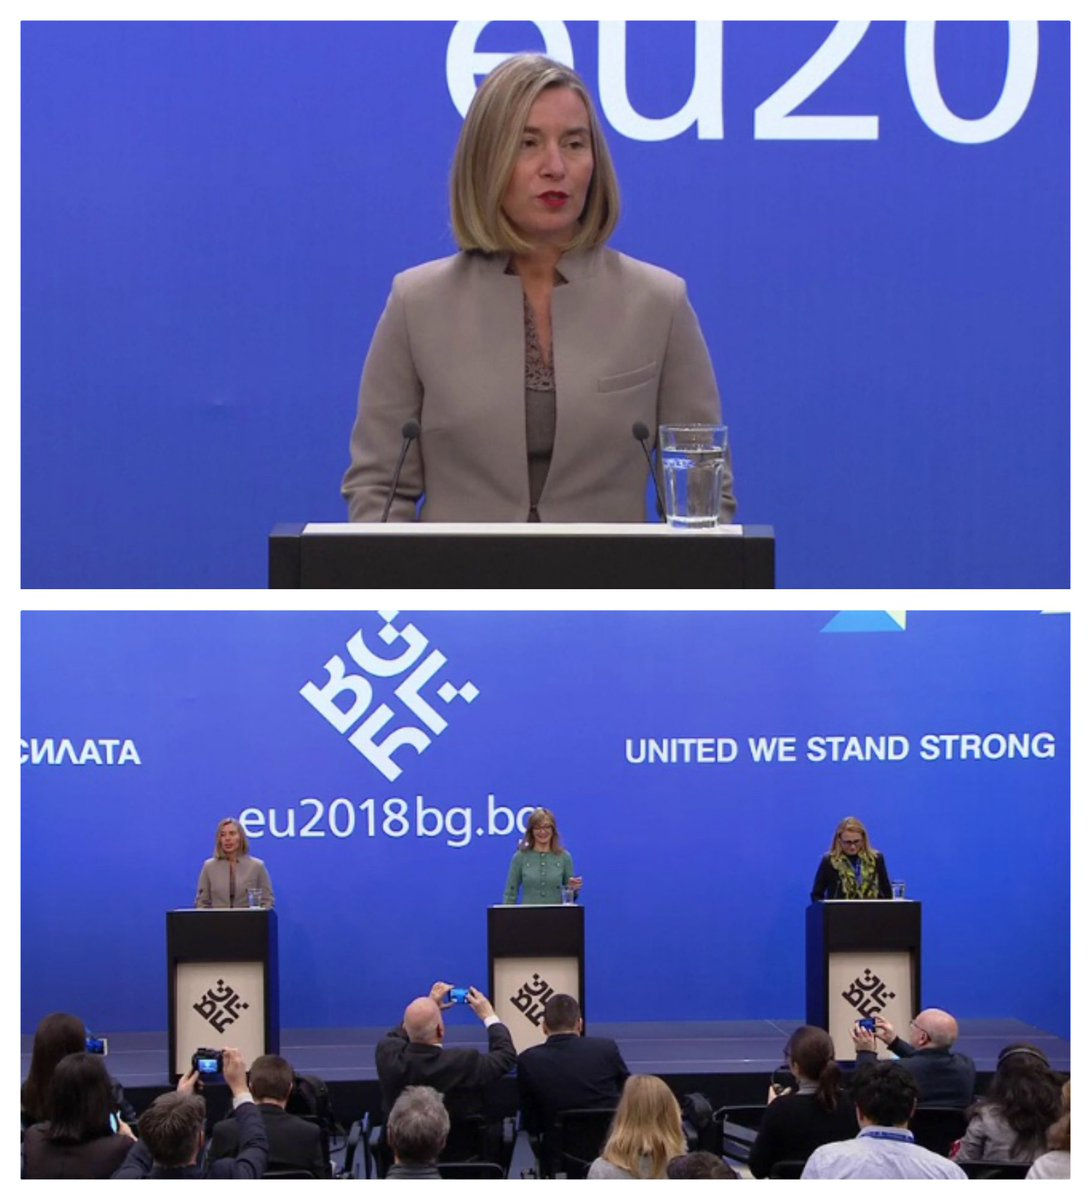 test Twitter Media - Watch the opening remarks by HRVP @FedericaMog at the joint press point with @EZaharievaMFA following the #EU-Foreign Ministers Informal Meeting (#Gymnich) on #WesternBalkans, #Syria, #EUdefence, #DPRK📺➡️ https://t.co/B3TJKJvWKJ @JHahnEU @EU2018BG #EU2018BG https://t.co/dAOwG69fn0